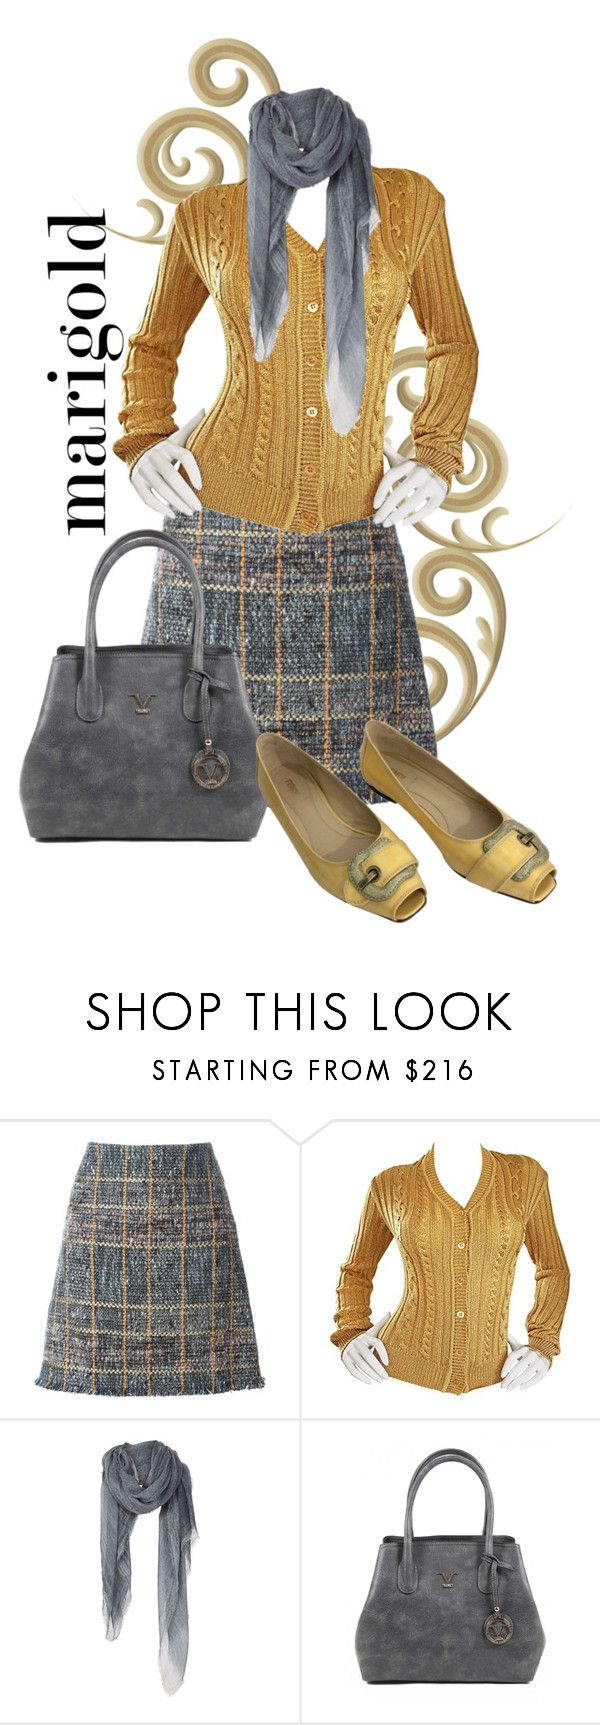 """""""Marigold"""" by theserialnester ❤ liked on Polyvore featuring Etro, Moschino, Versace 19•69 and Fendi"""